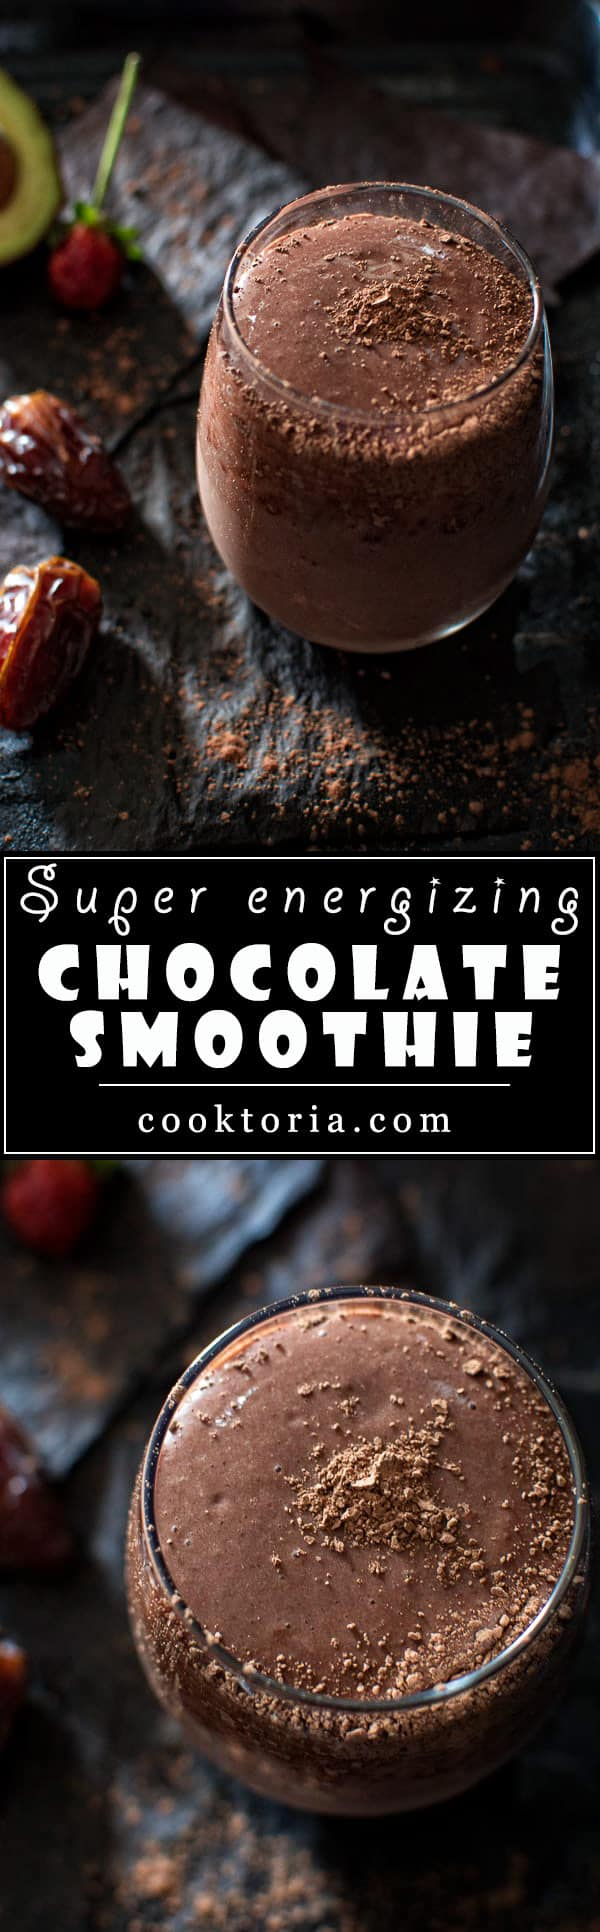 SUPER ENERGIZING CHOCOLATE SMOOTHIE - COOKTORIA